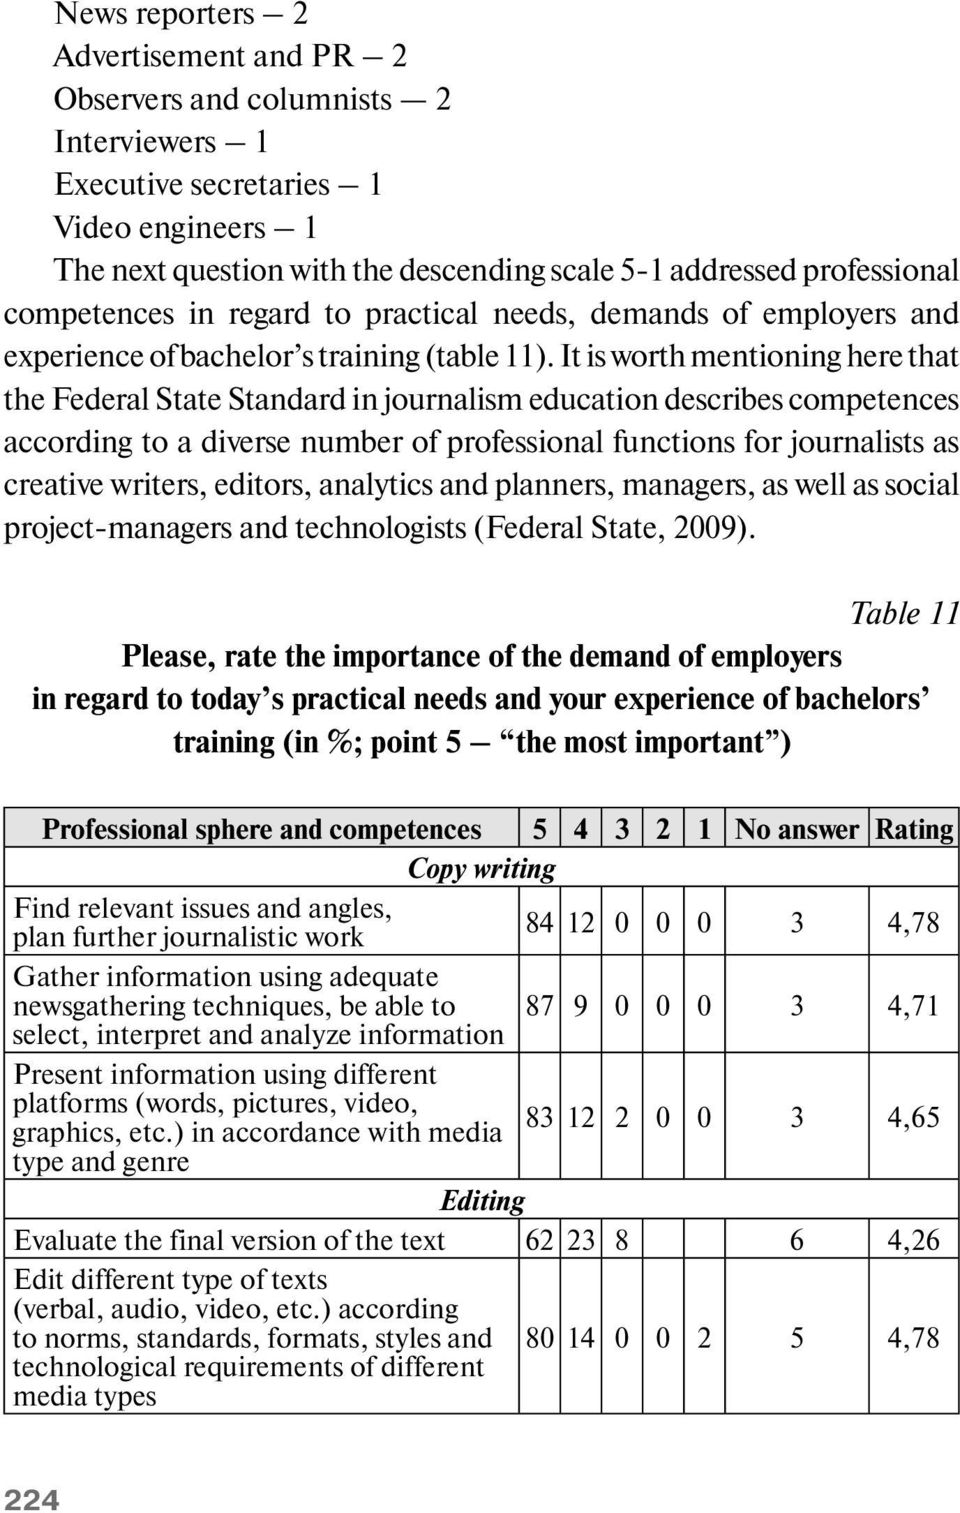 It is worth mentioning here that the Federal State Standard in journalism education describes competences according to a diverse number of professional functions for journalists as creative writers,